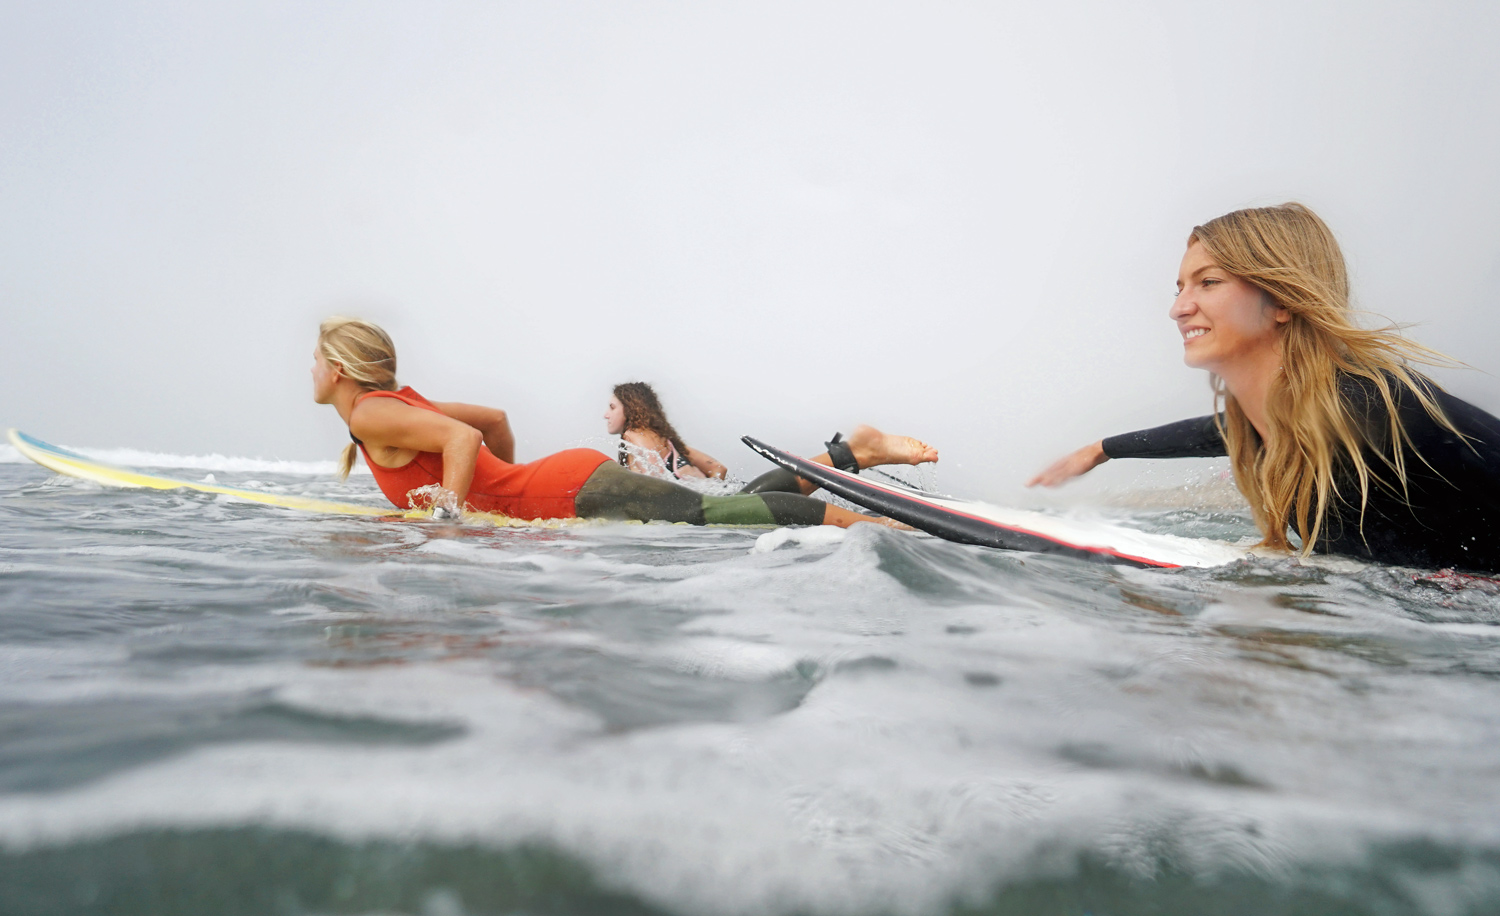 You'll learn our WOW secrets for easier, more effective paddling so you can conserve your energy for riding the waves!